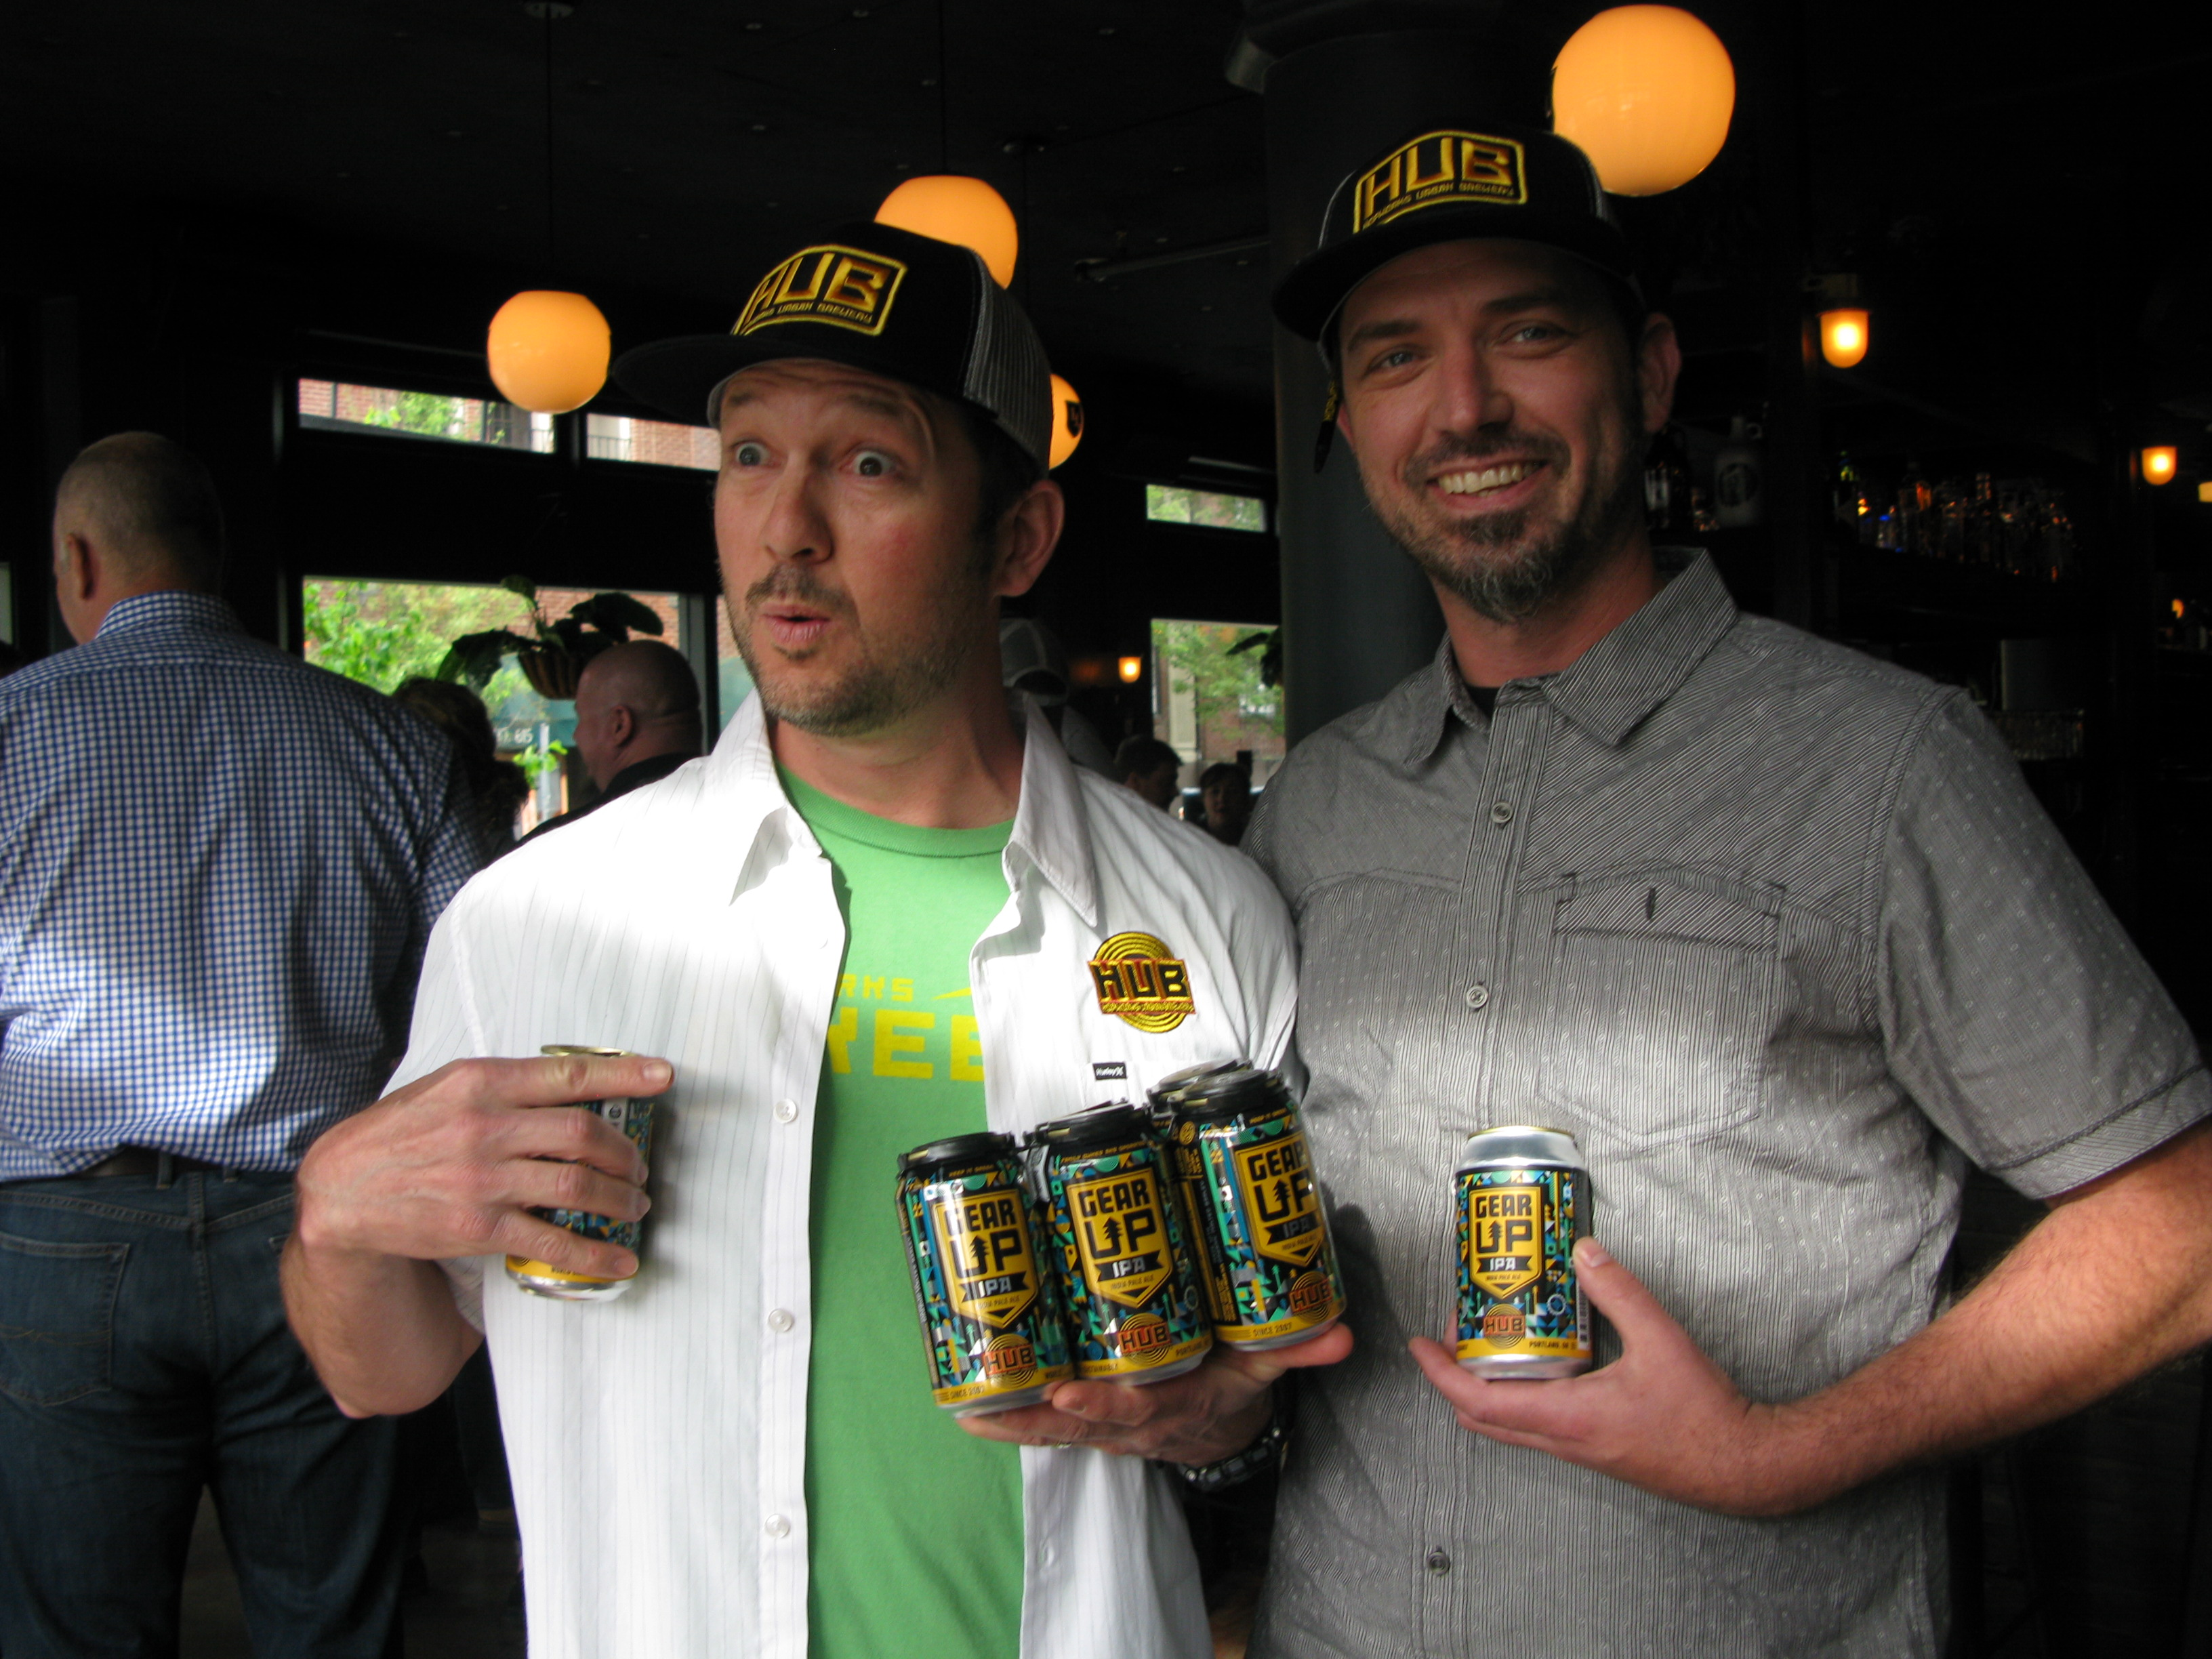 Tom Bleigh (right) and founder Christian Ettinger show off the culmination of six months of work – Hopworks new Gear Up IPA, a Northwest-Style IPA with a dry and tropical-hop profile.